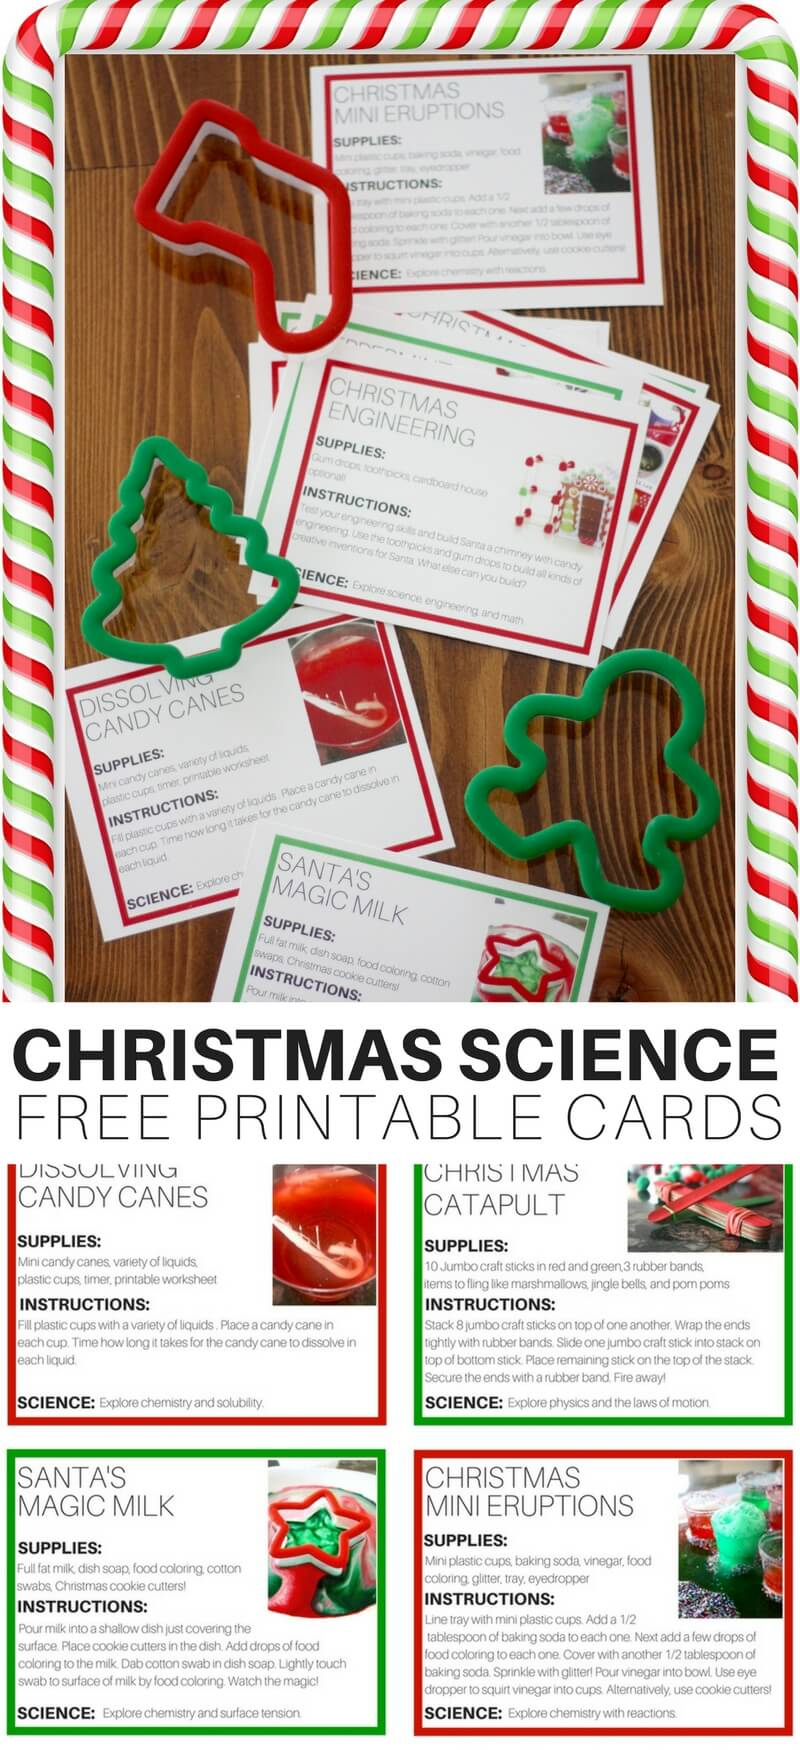 Christmas movies are fun, Christmas baking is fun, Christmas caroling is fun, but what's the most fun of all? Christmas science! Well at least it is for us around here whether it's making a new slime recipe, trying a glittering eruption, or building a holly jolly catapult! I love science and STEM for the holidays, and you can too. Print out our free Christmas science cards to add extra merriment to your holiday season.